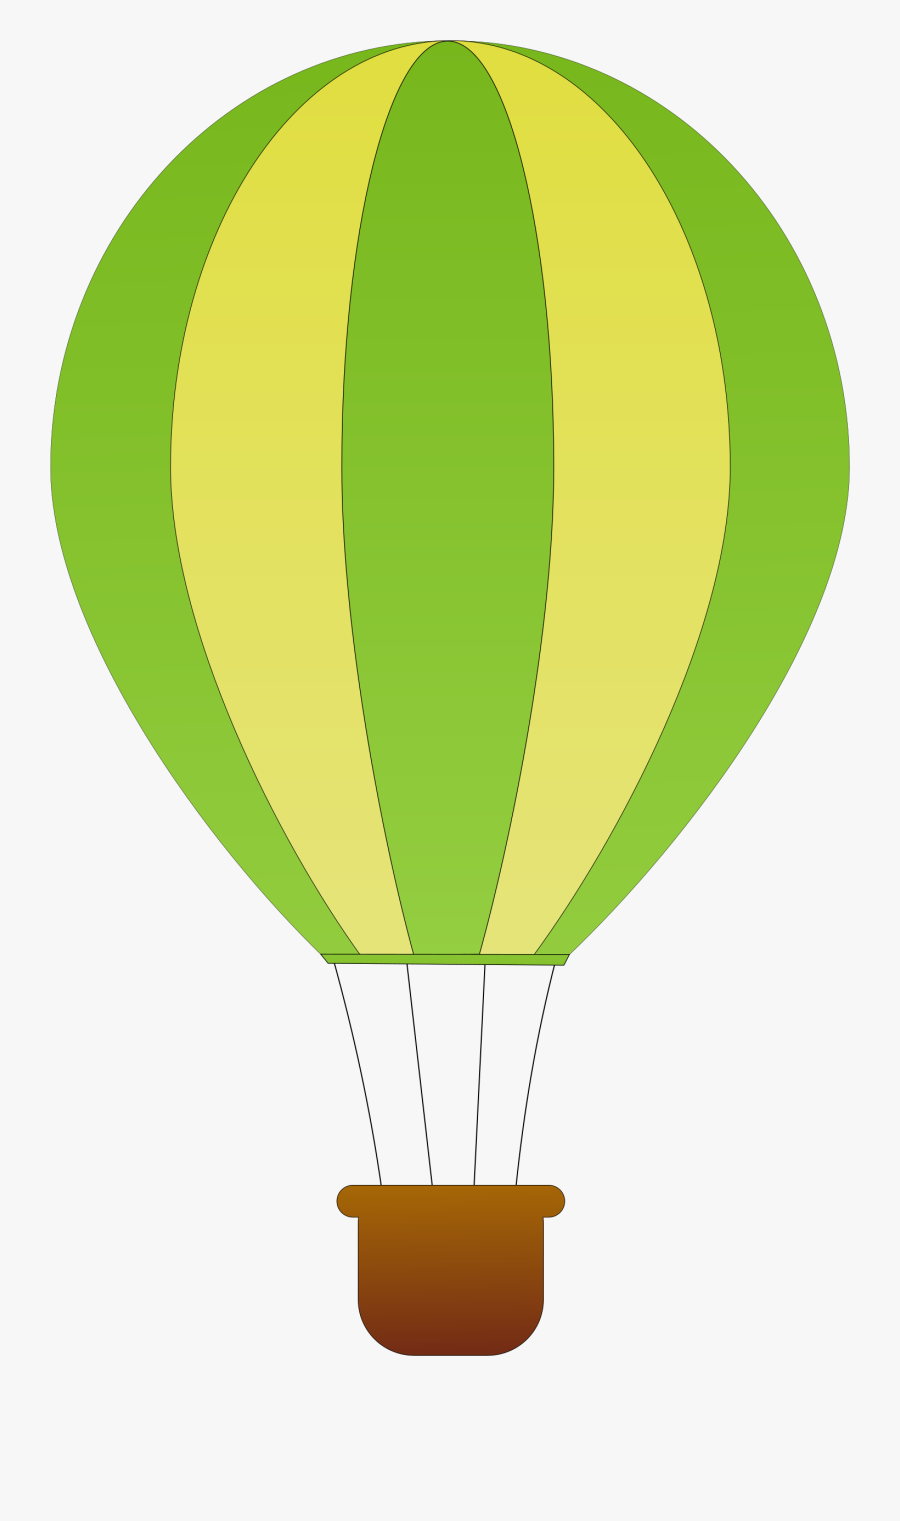 This Free Icons Png Design Of Vertical Striped Hot - Blue Hot Air Balloon Clipart, Transparent Clipart